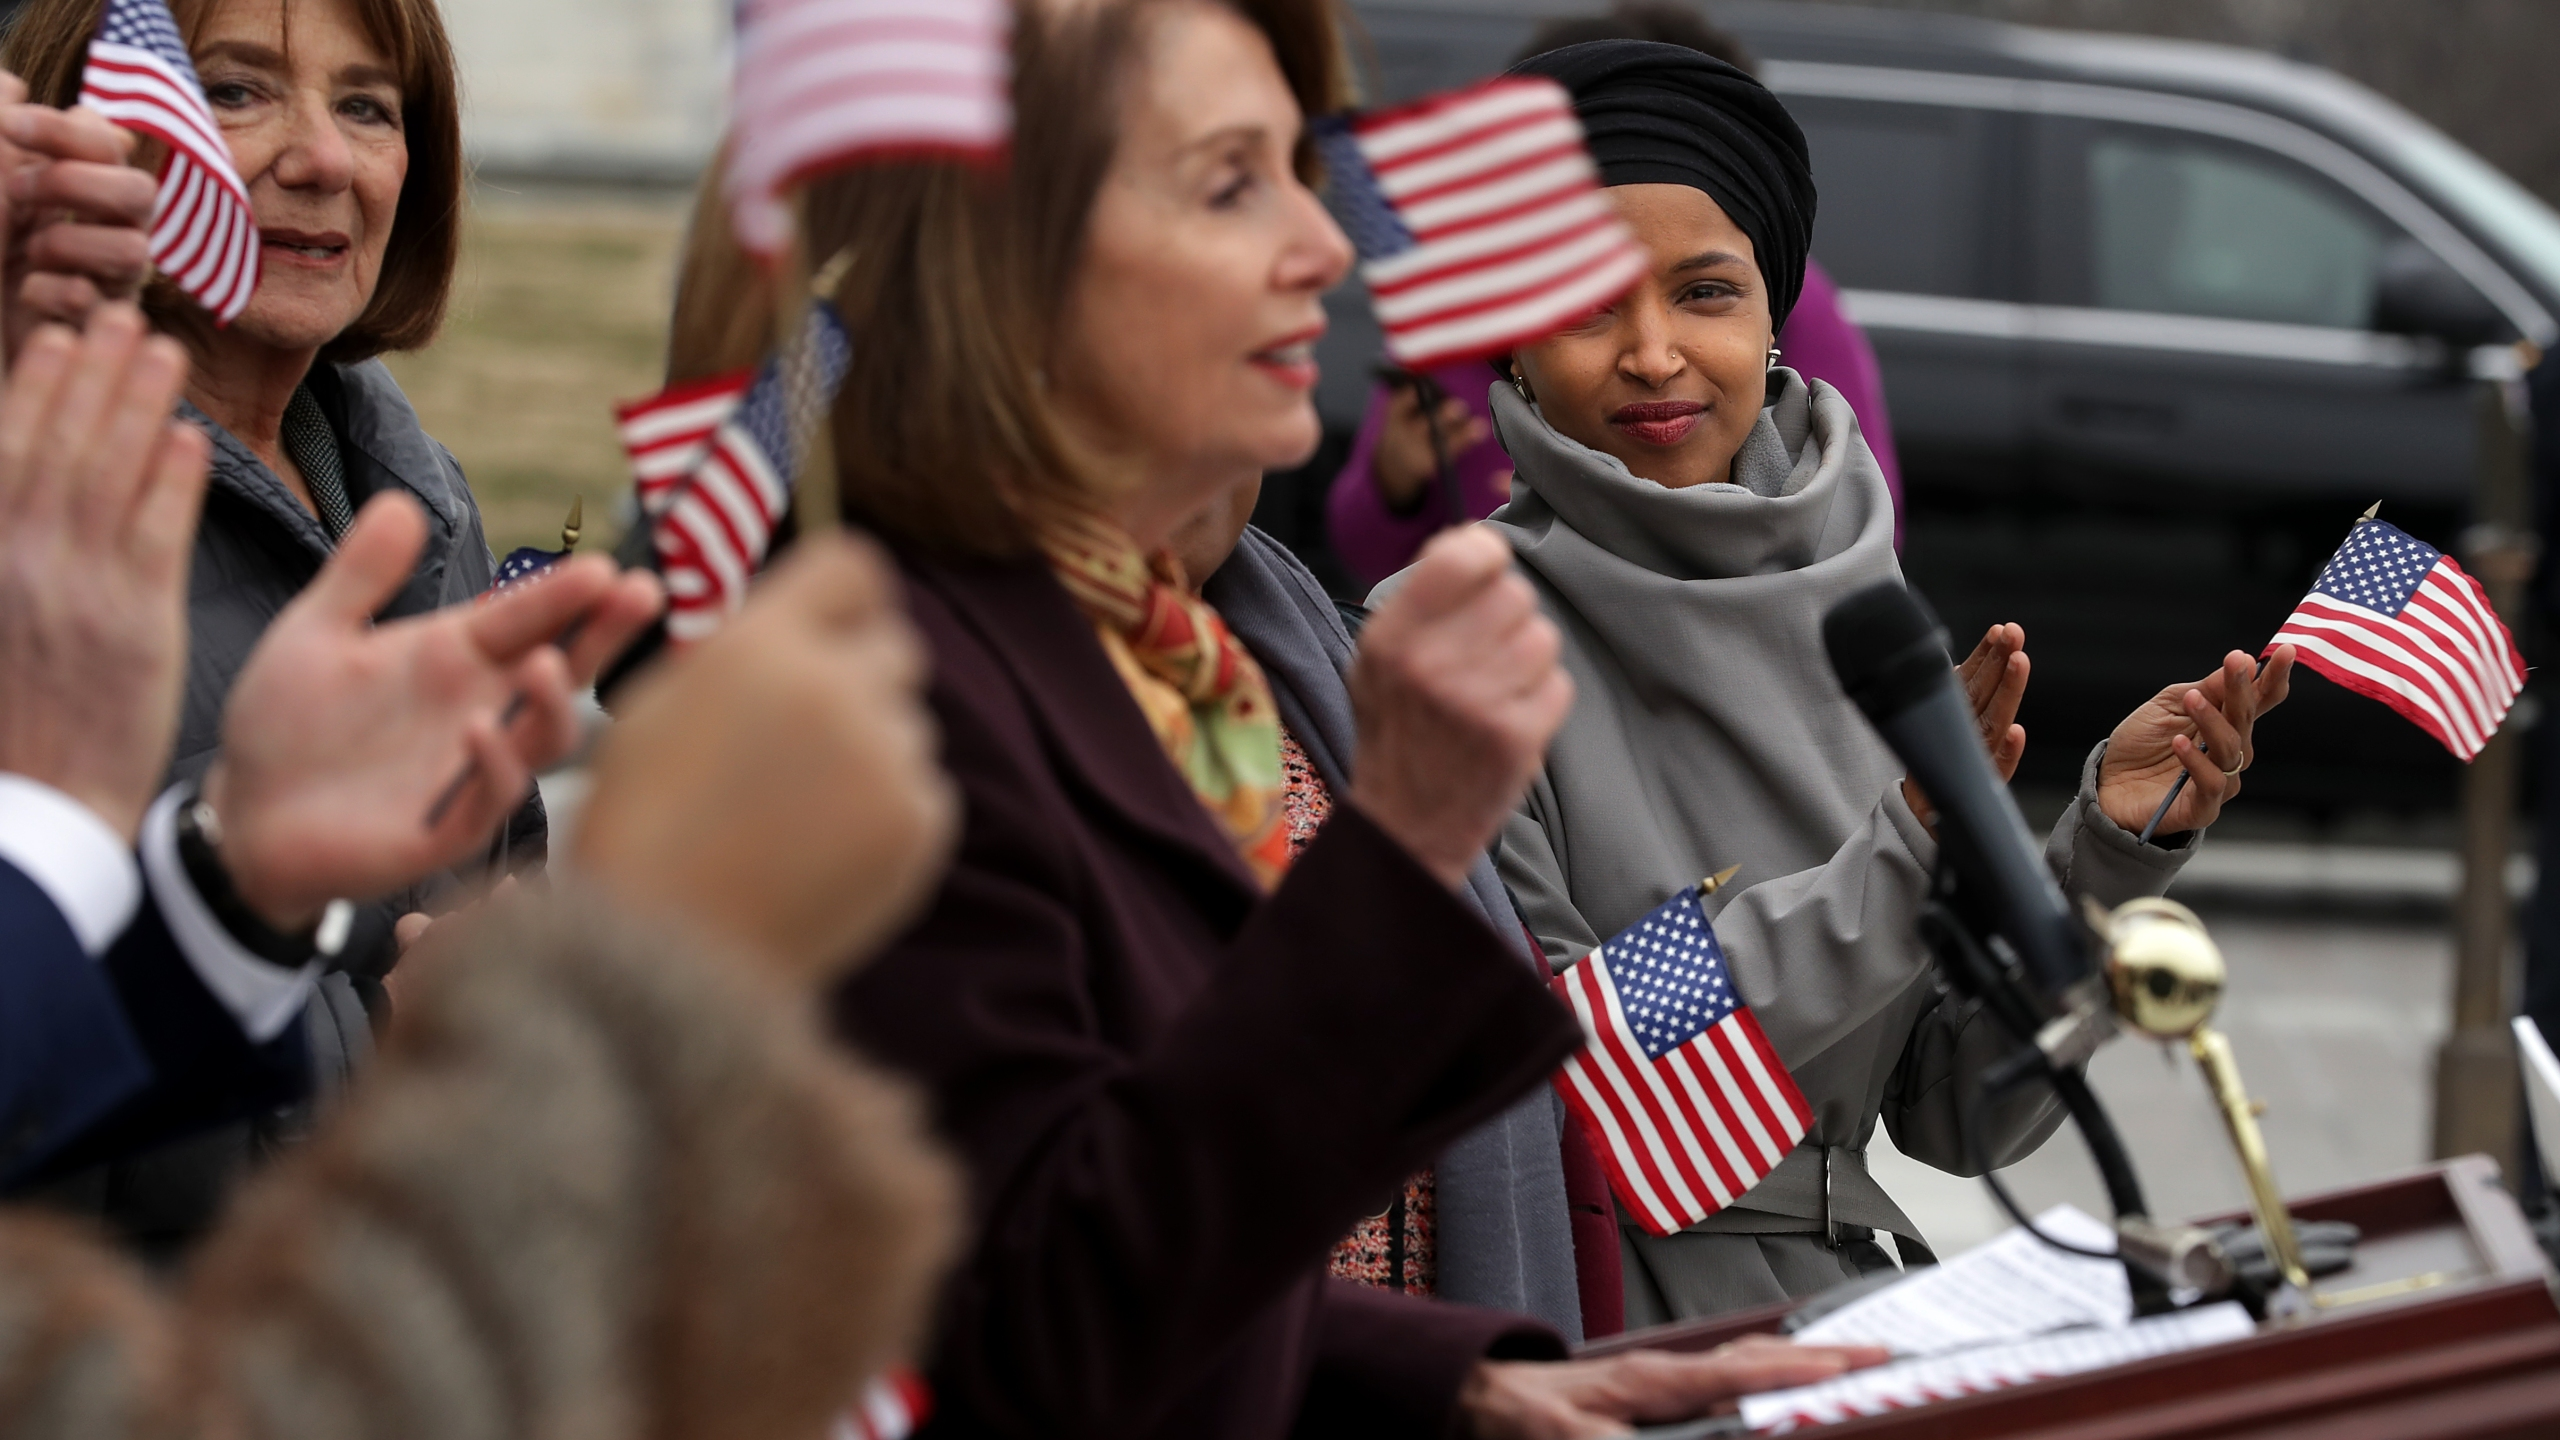 Rep. Ilhan Omar (D-MN) (R) listens to Speaker of the House Nancy Pelosi (D-CA) during a rally for H.R. 1, or the We The People Act, on the East Steps of the U.S. Capitol March 8, 2019. (Credit: Chip Somodevilla/Getty Images)